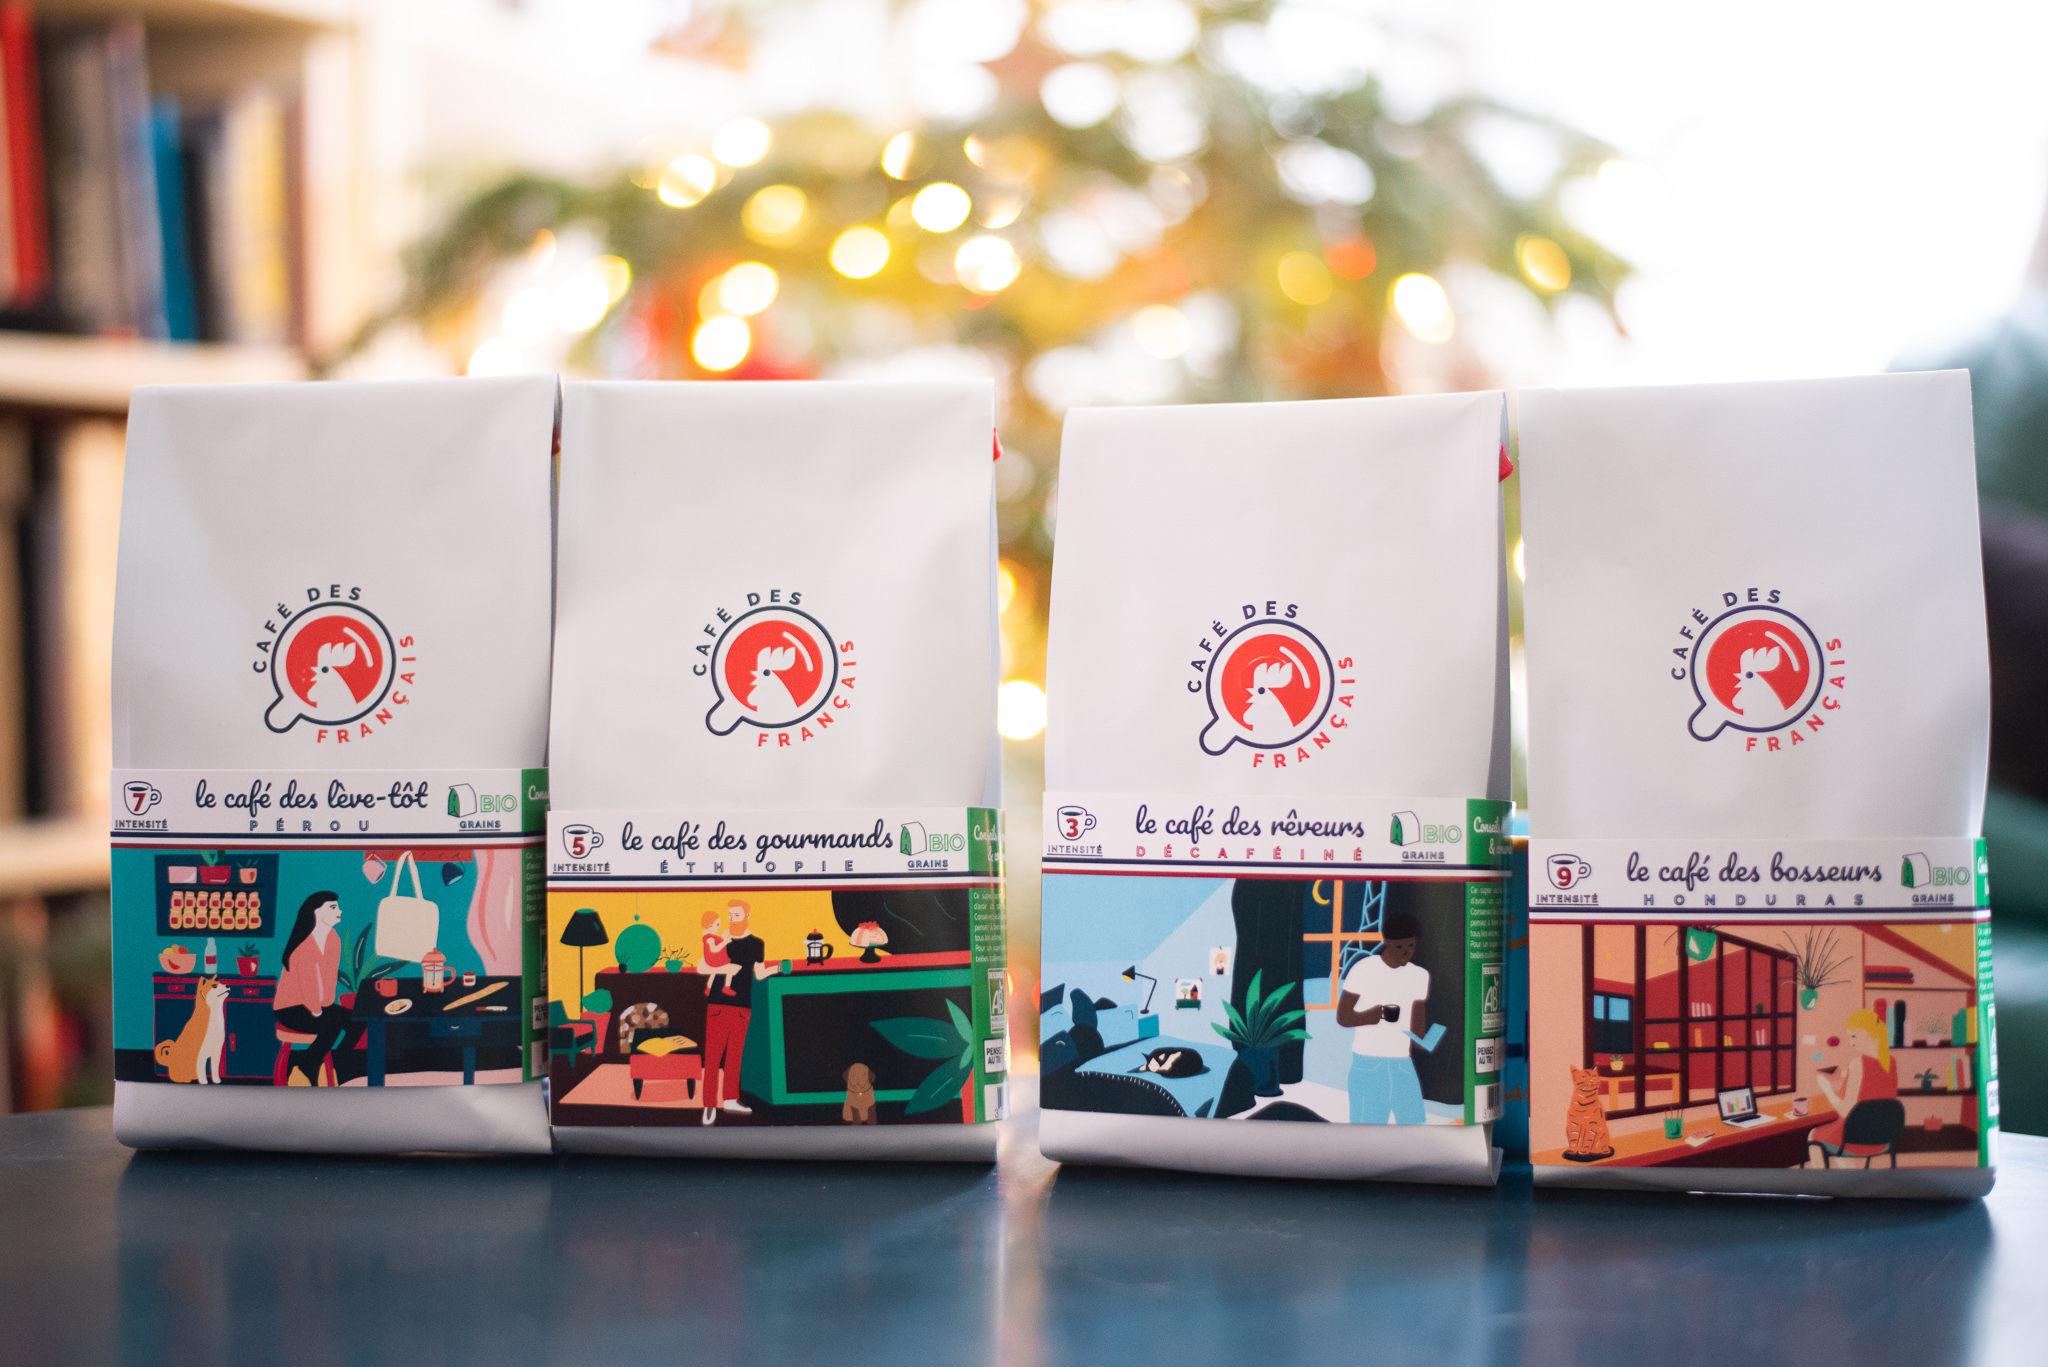 Packaging Café des français